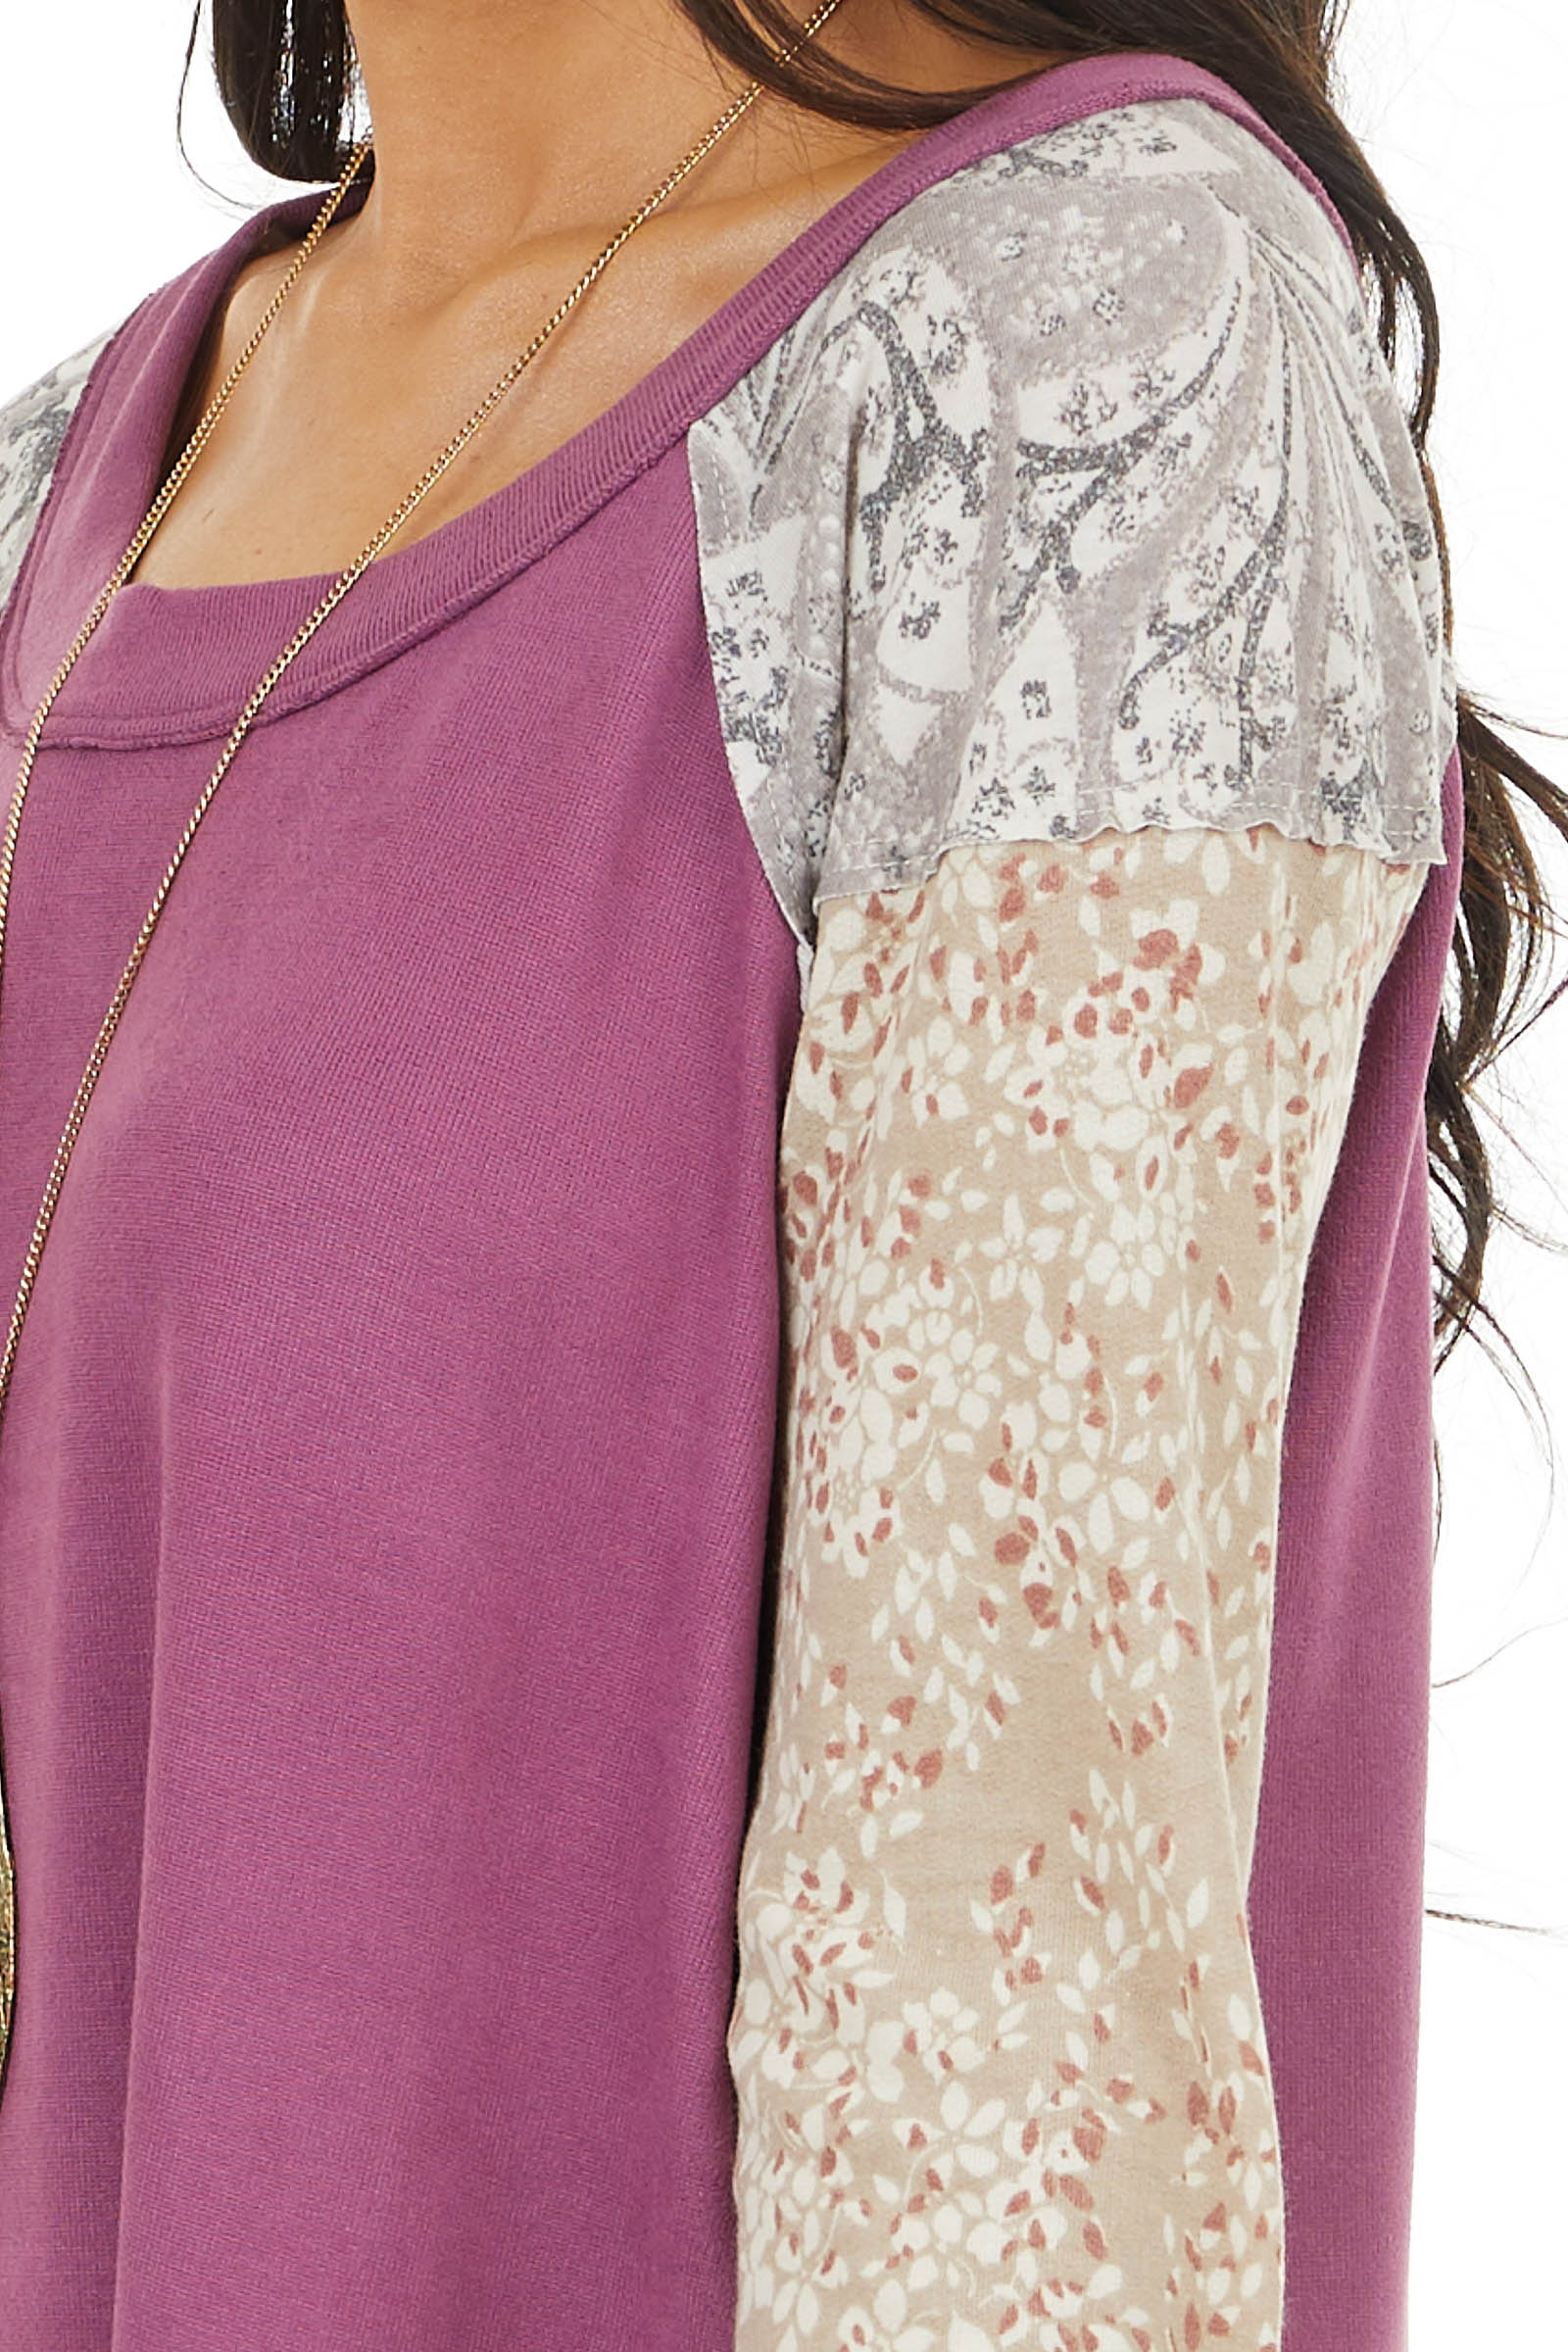 Plum Multiprint Long Sleeve Knit Top with Raw Edge Detail